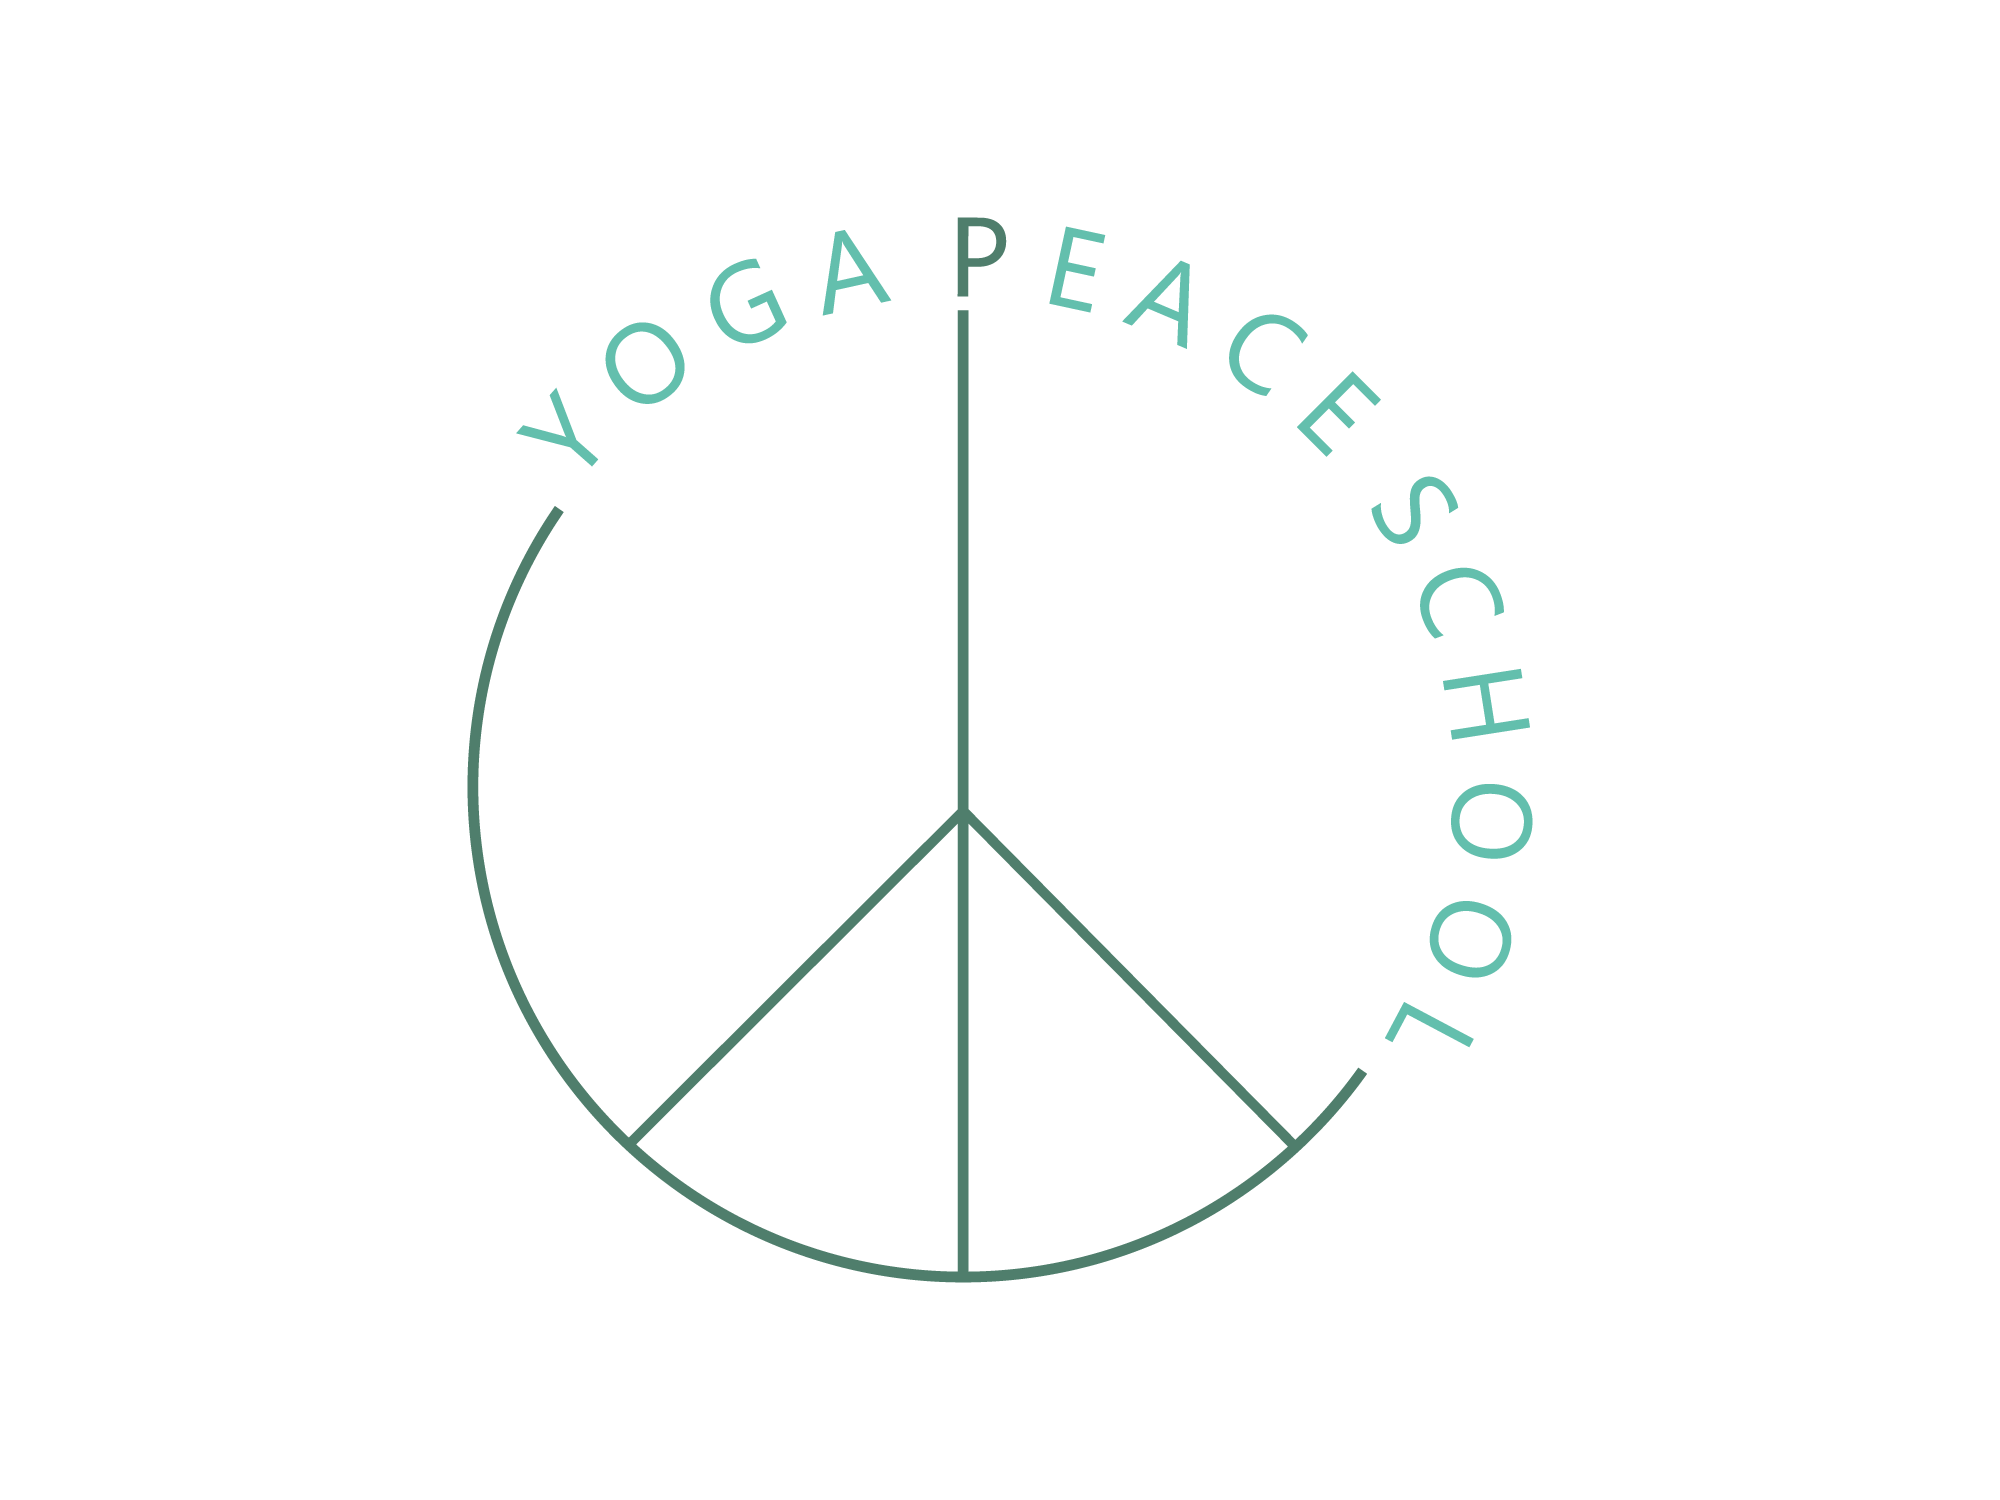 Yoga Peace School